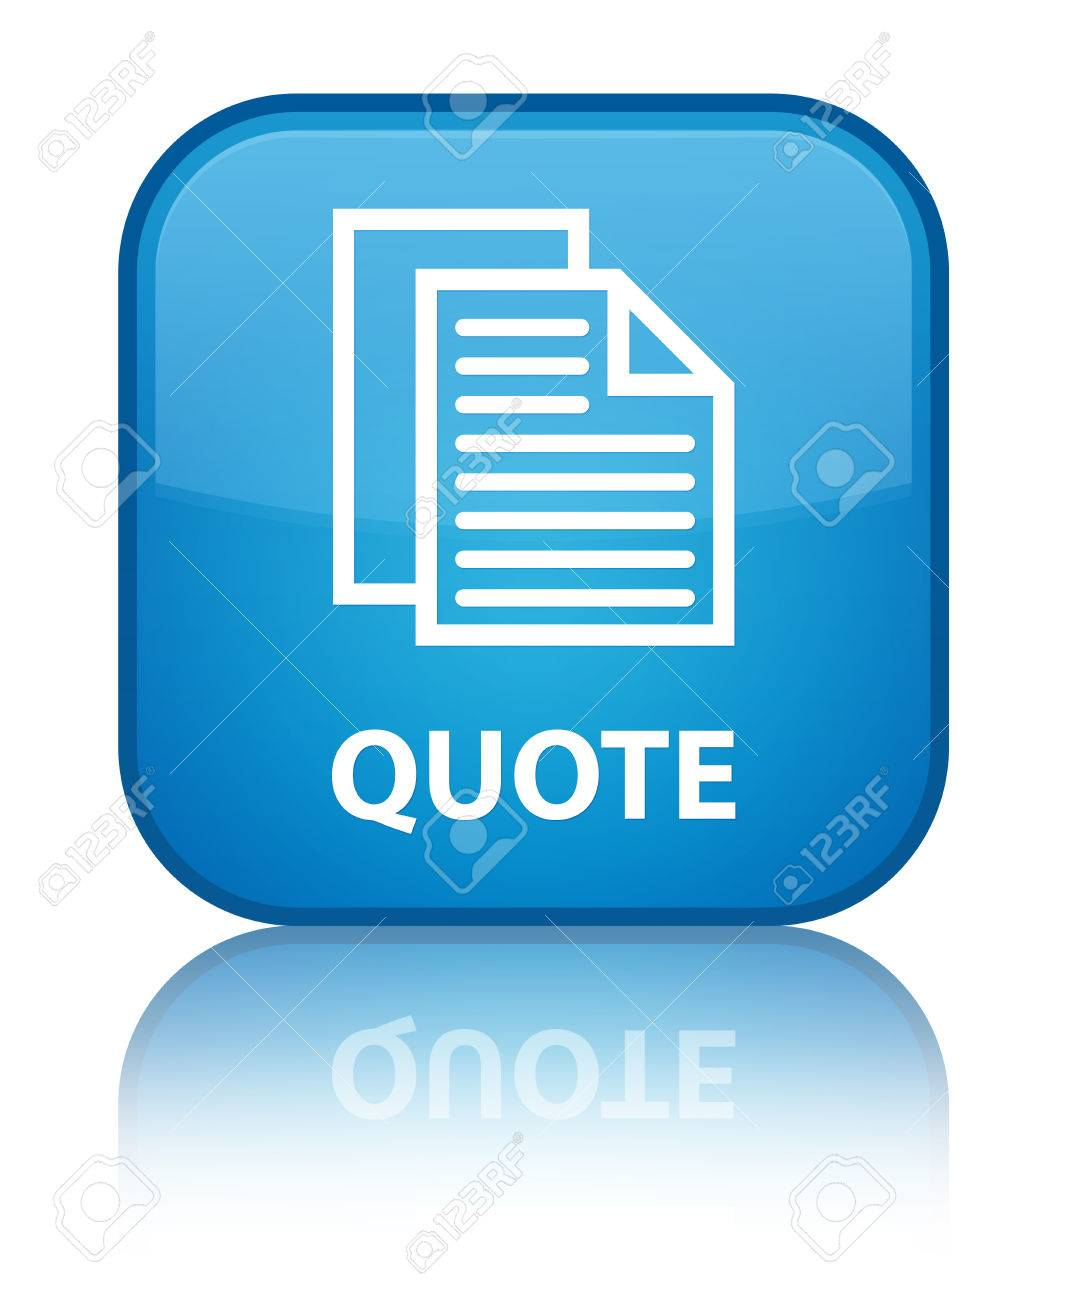 quote document pages icon cyan blue square button stock photo quote document pages icon cyan blue square button stock photo 37751726